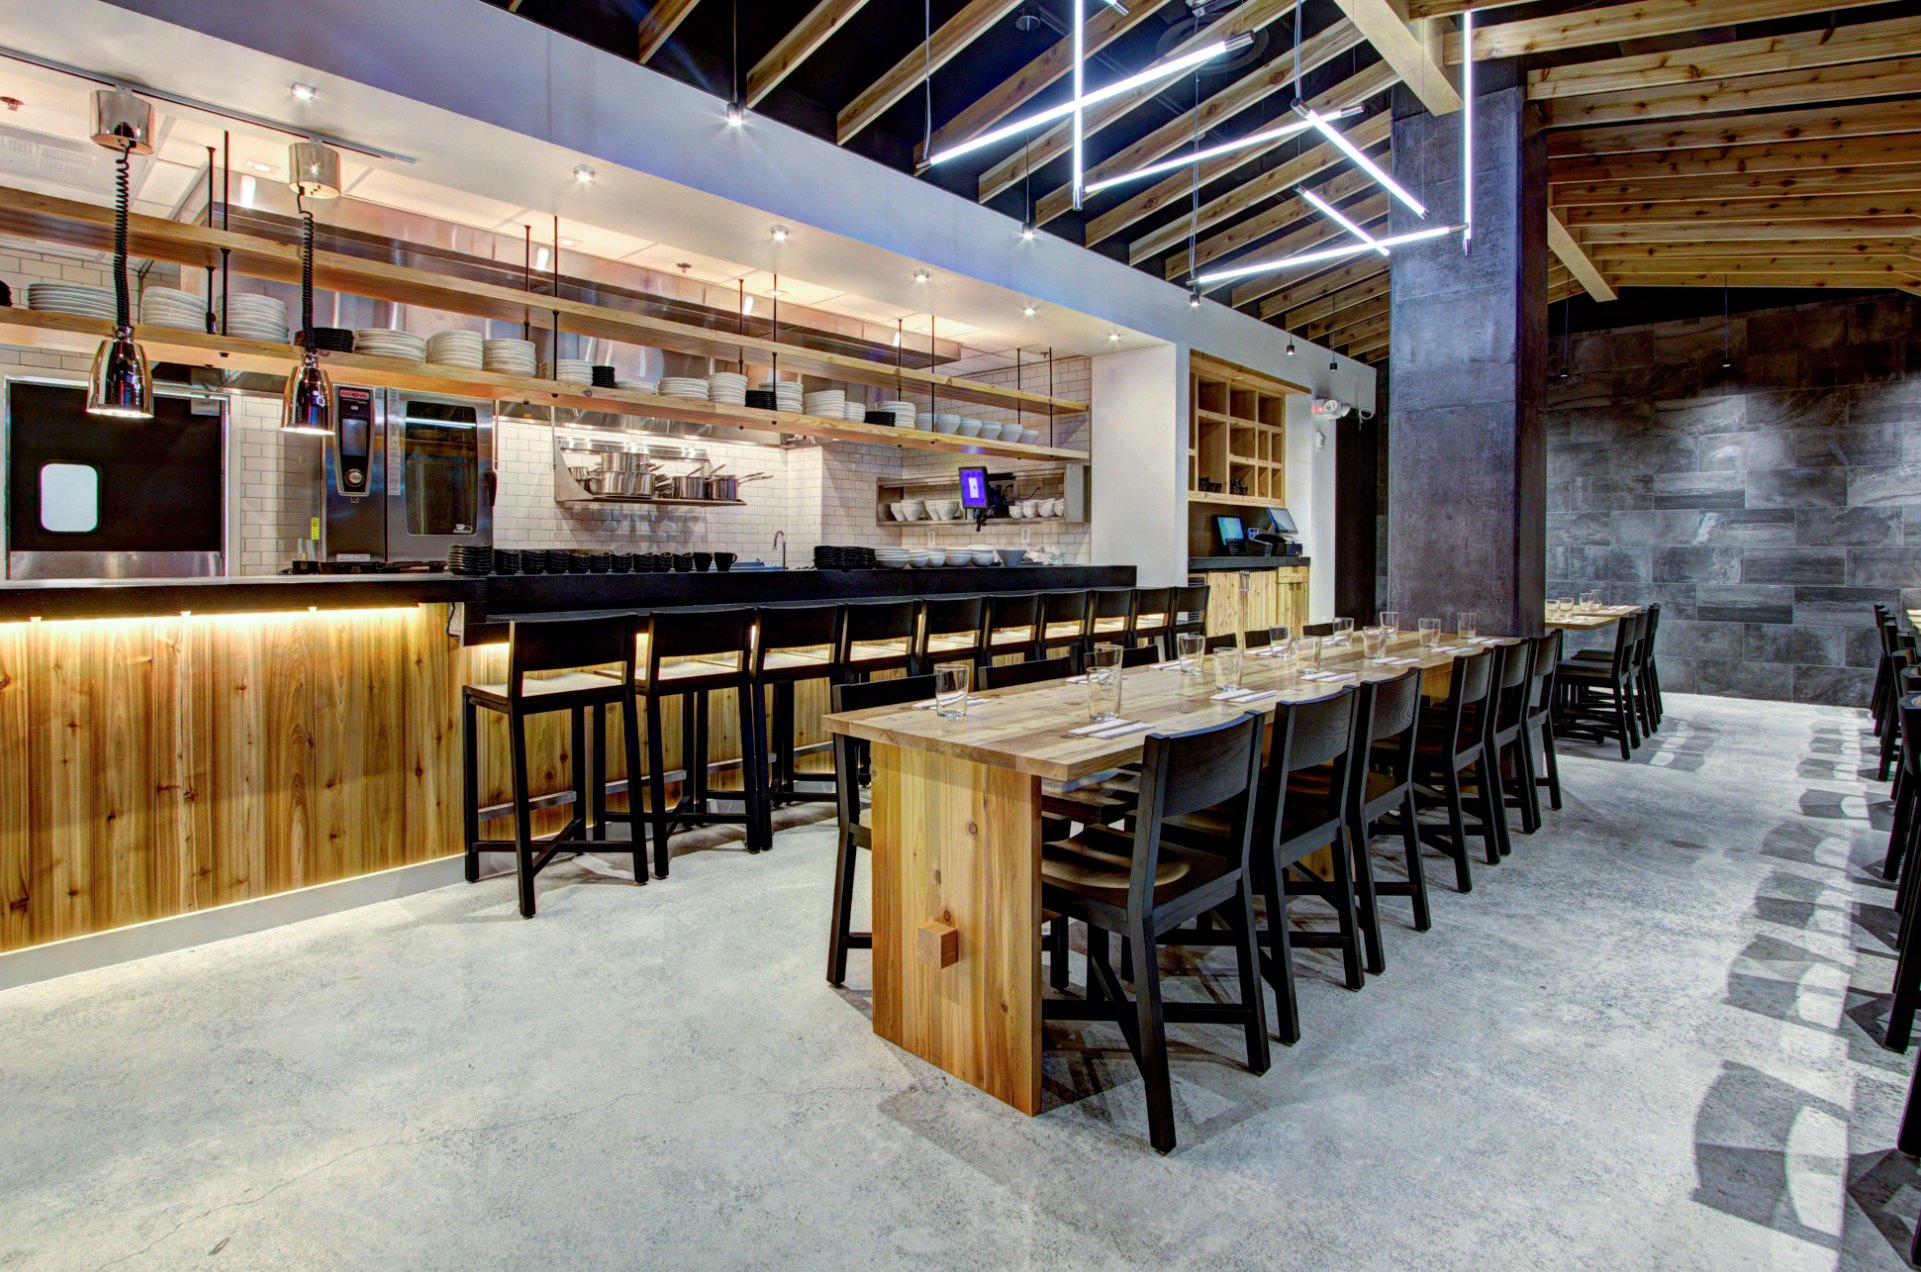 Yona Built by Hospitality Construction Services